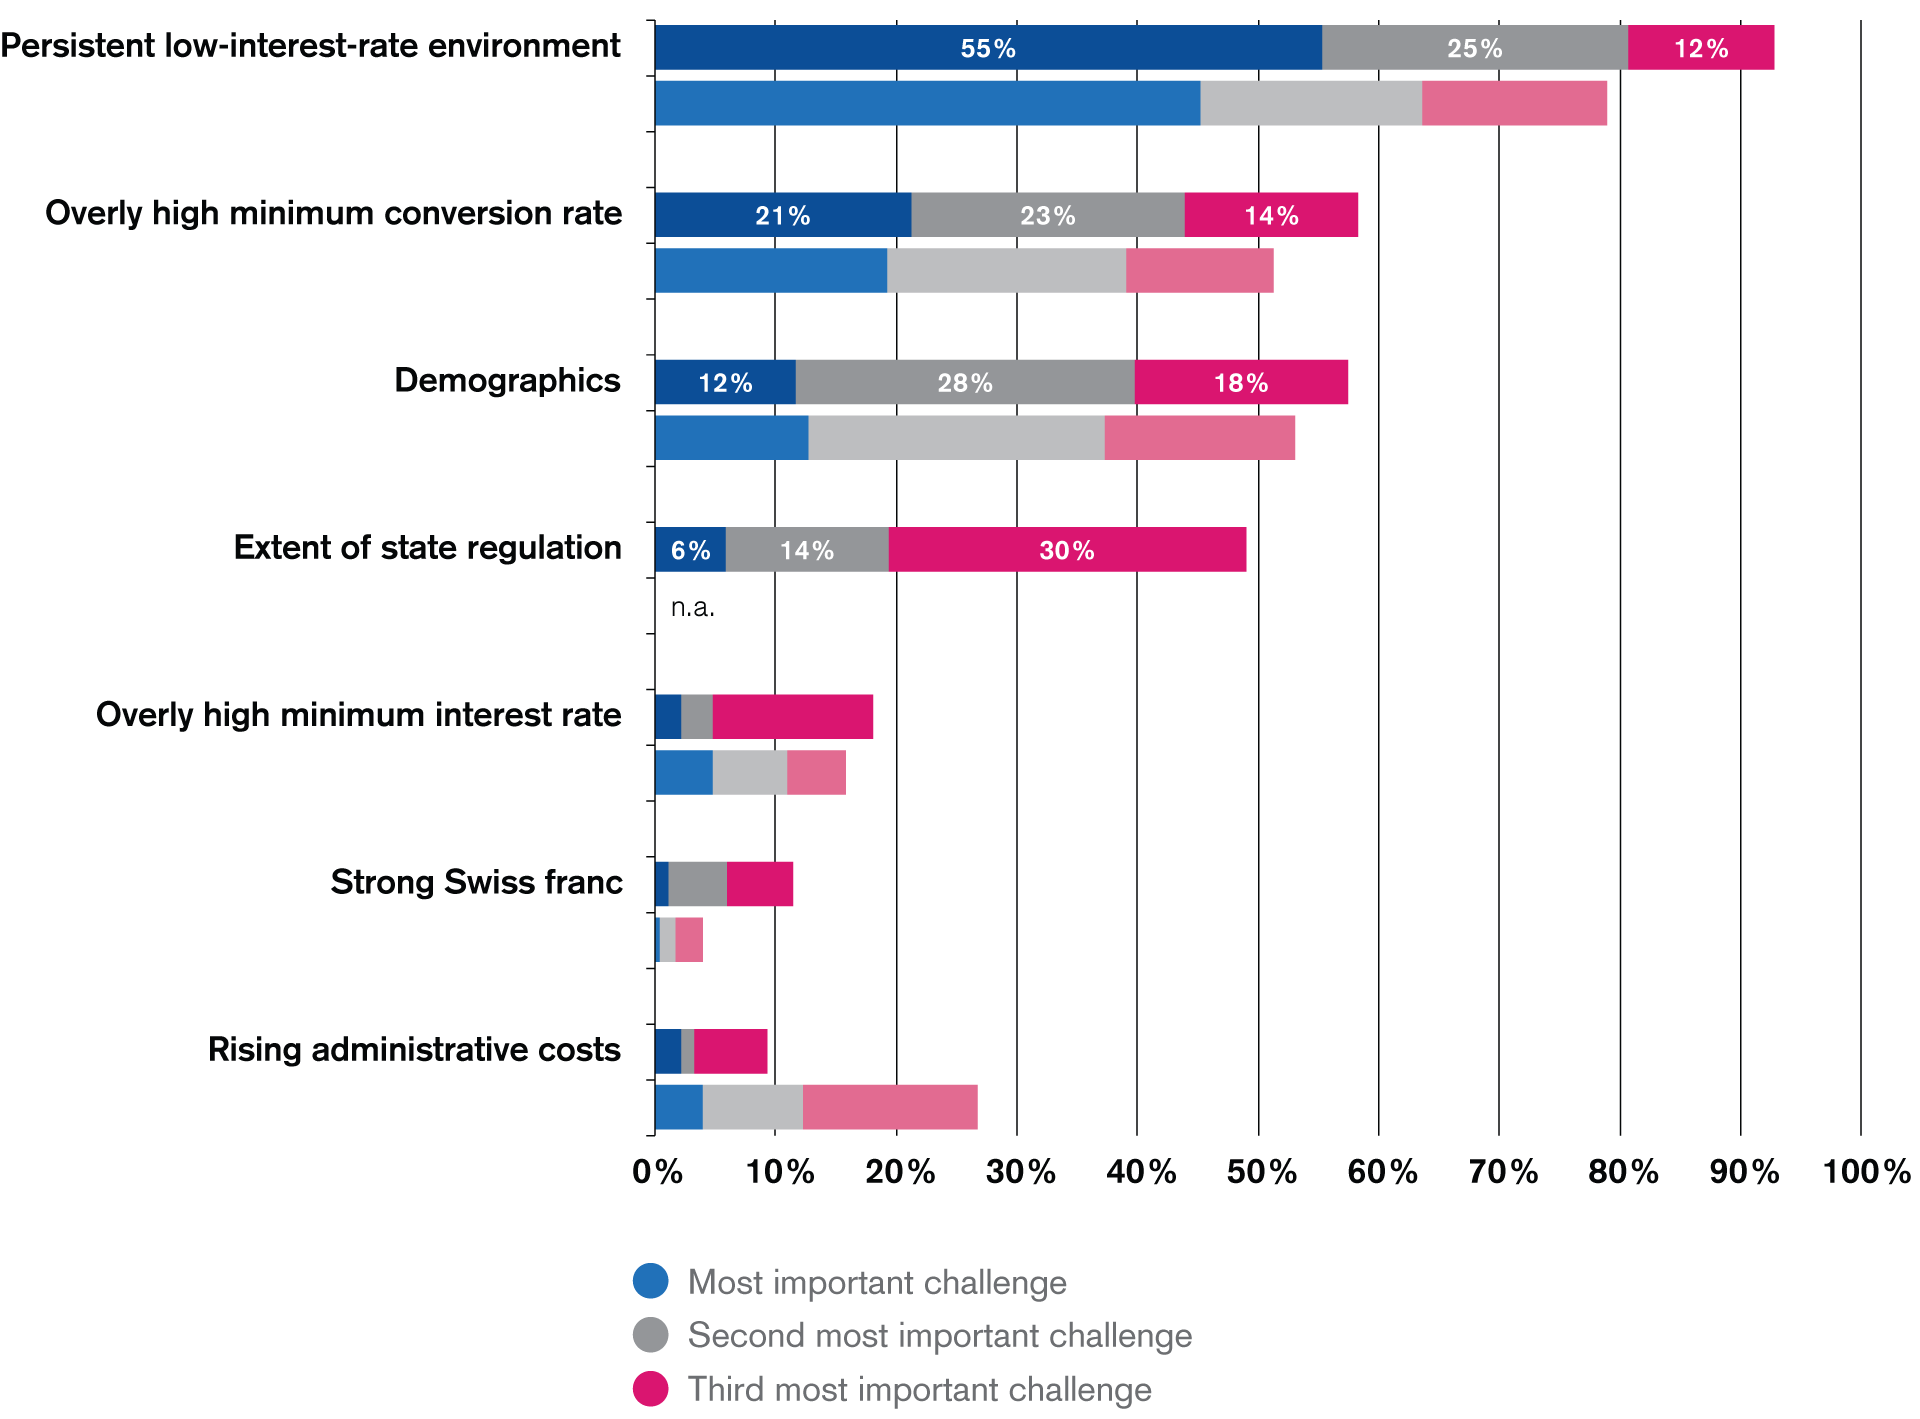 Greatest Challenges for Swiss Pension Funds